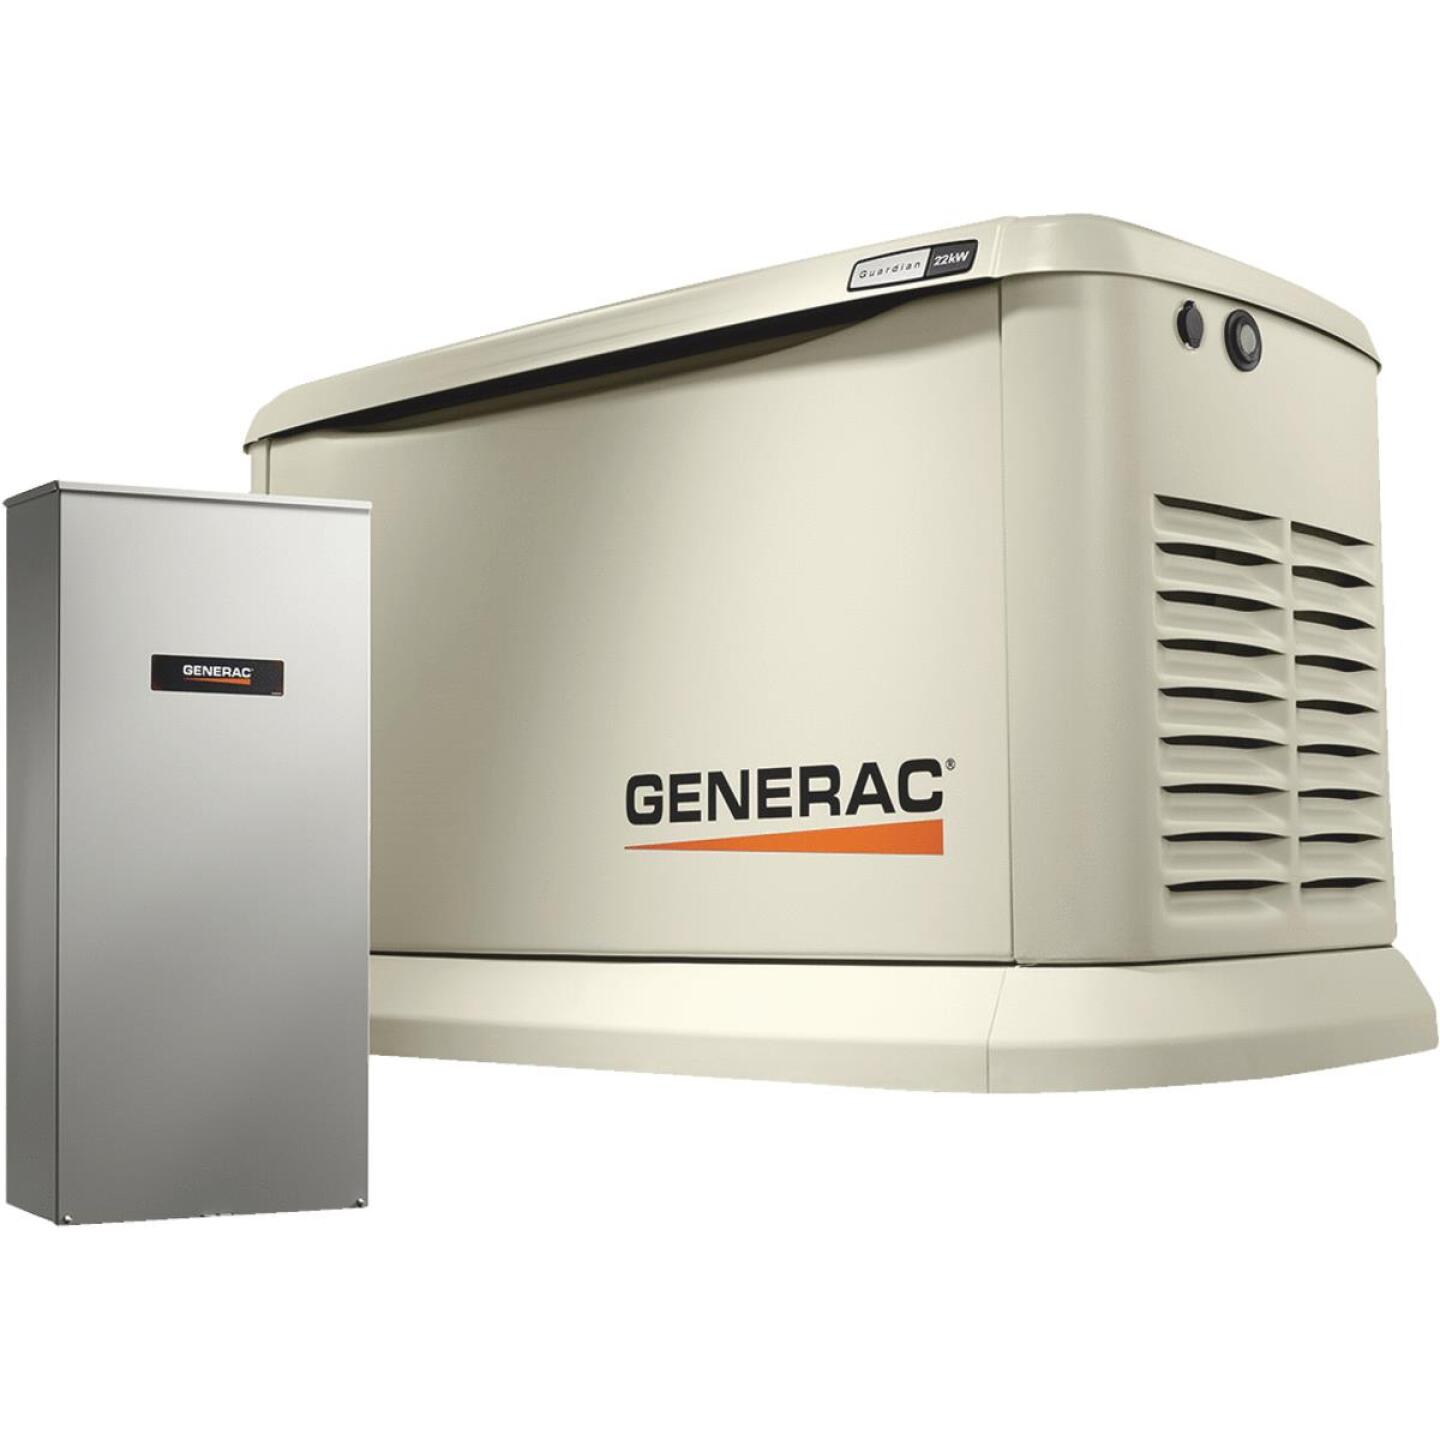 Generac Guardian WiFi 19,500W Natural Gas/22,000W LP Home Standby Generator with 200A Automatic Transfer Switch Image 1